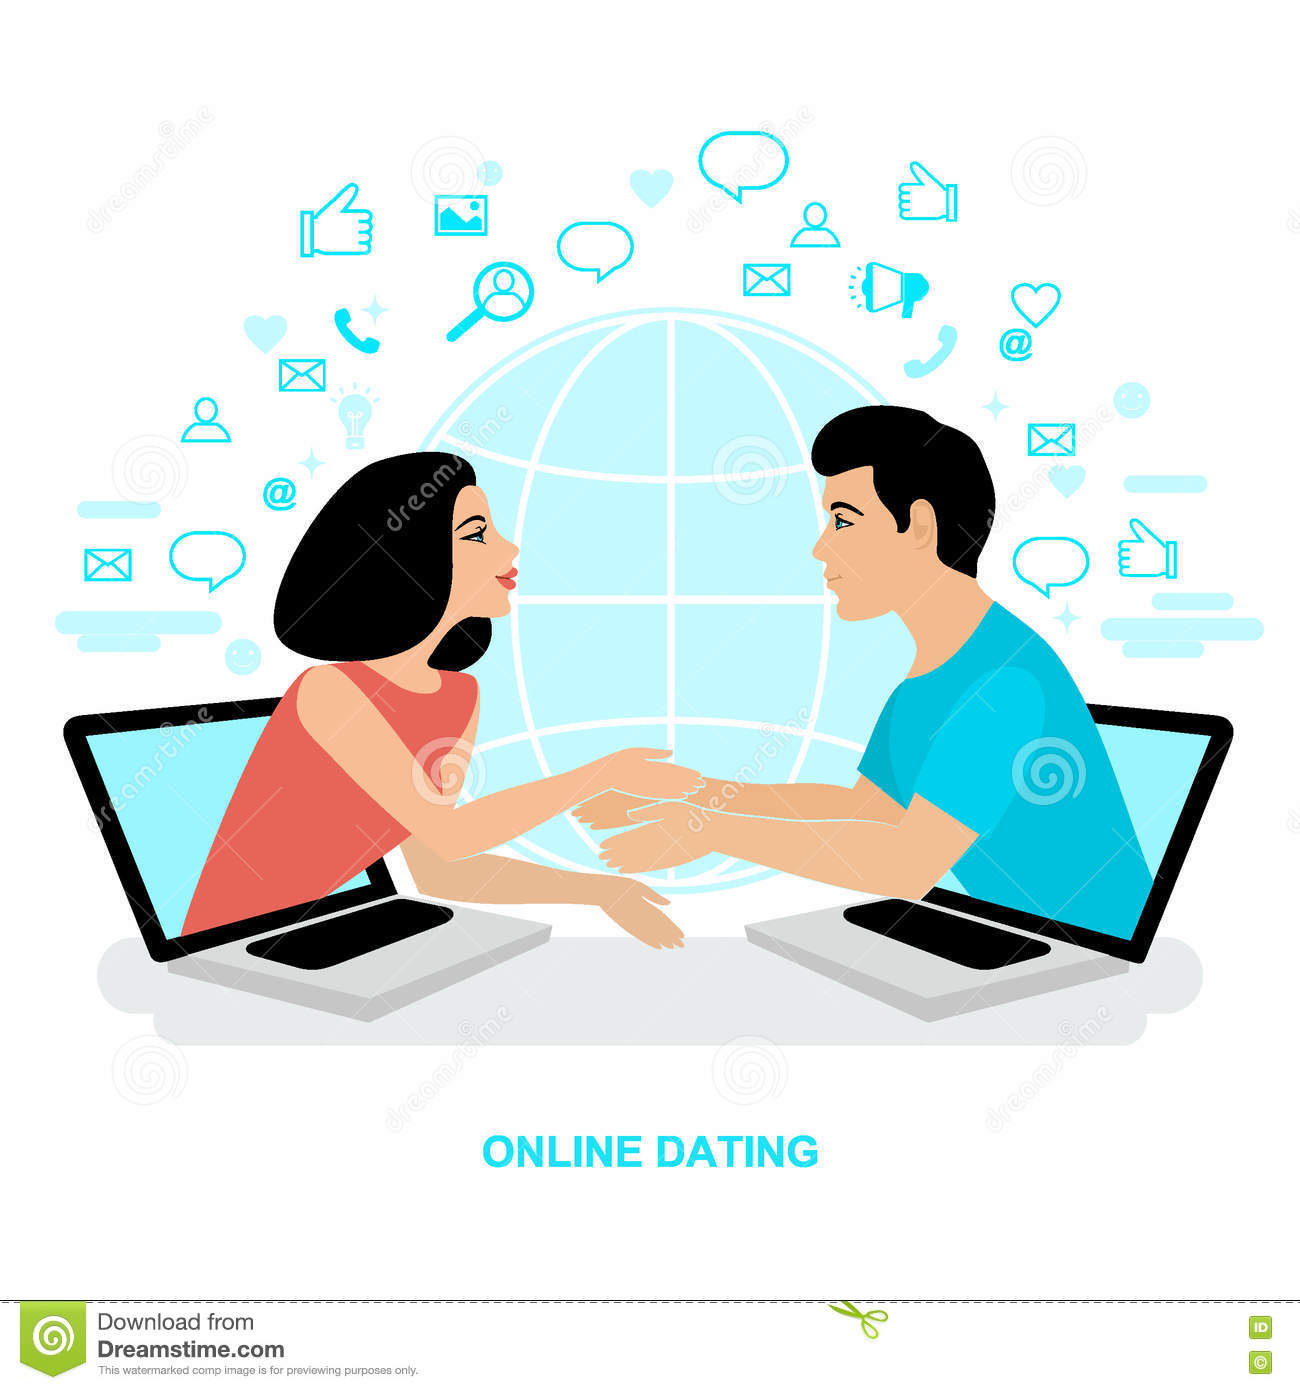 loxley online hookup & dating Certified hookup id for meetup  hookup id is an online verification system required by almost all online hookup dating sites nowadays to ensure the safety of .